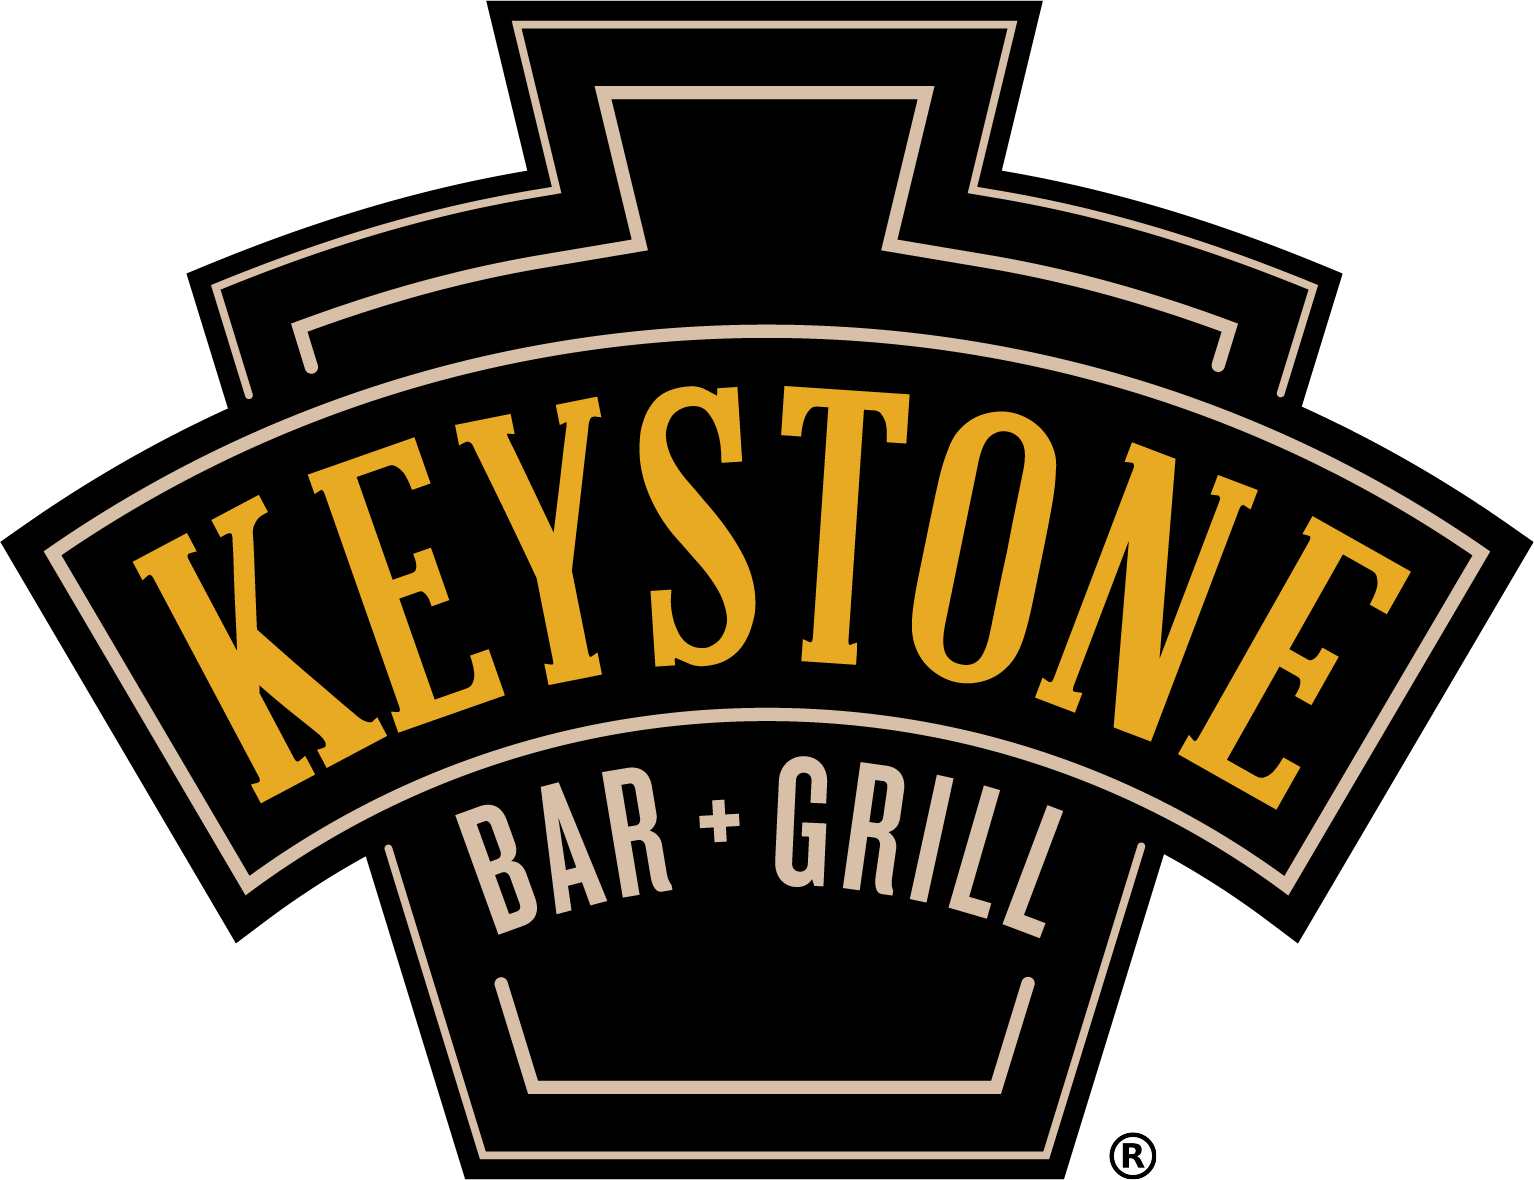 Keystone Bar & Grill